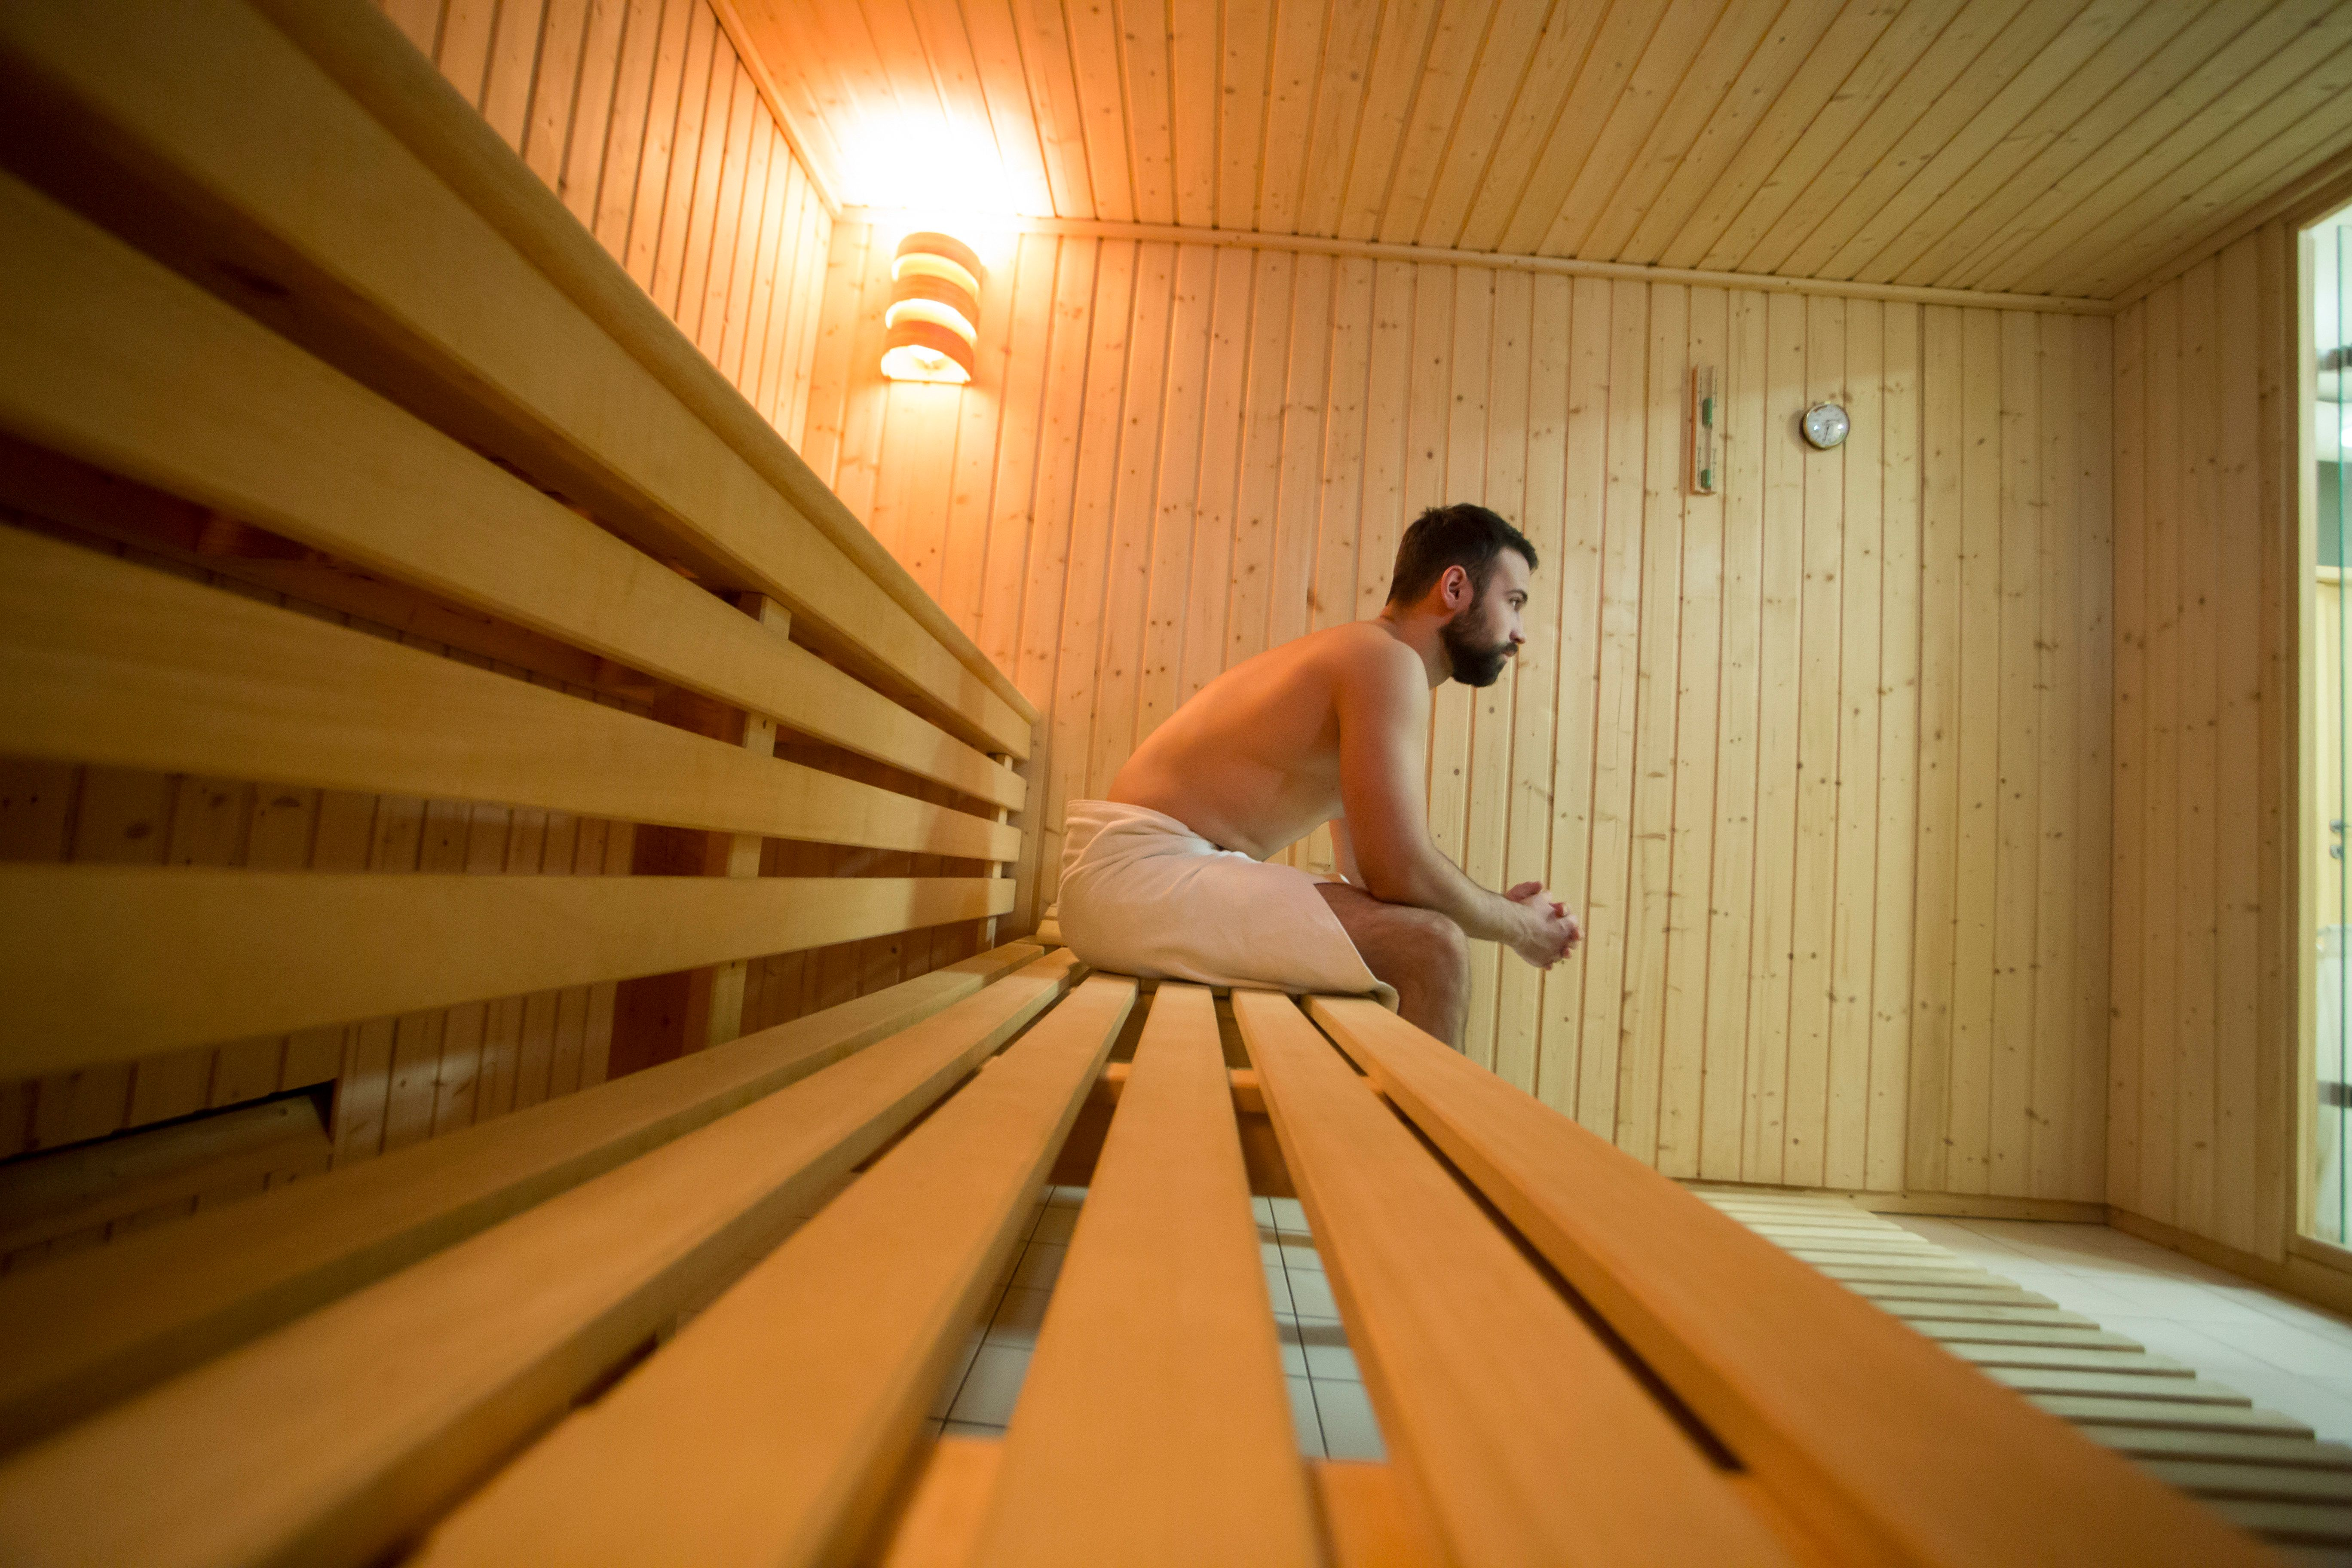 Follow these tips tostay healthy while enjoying a sauna or steam